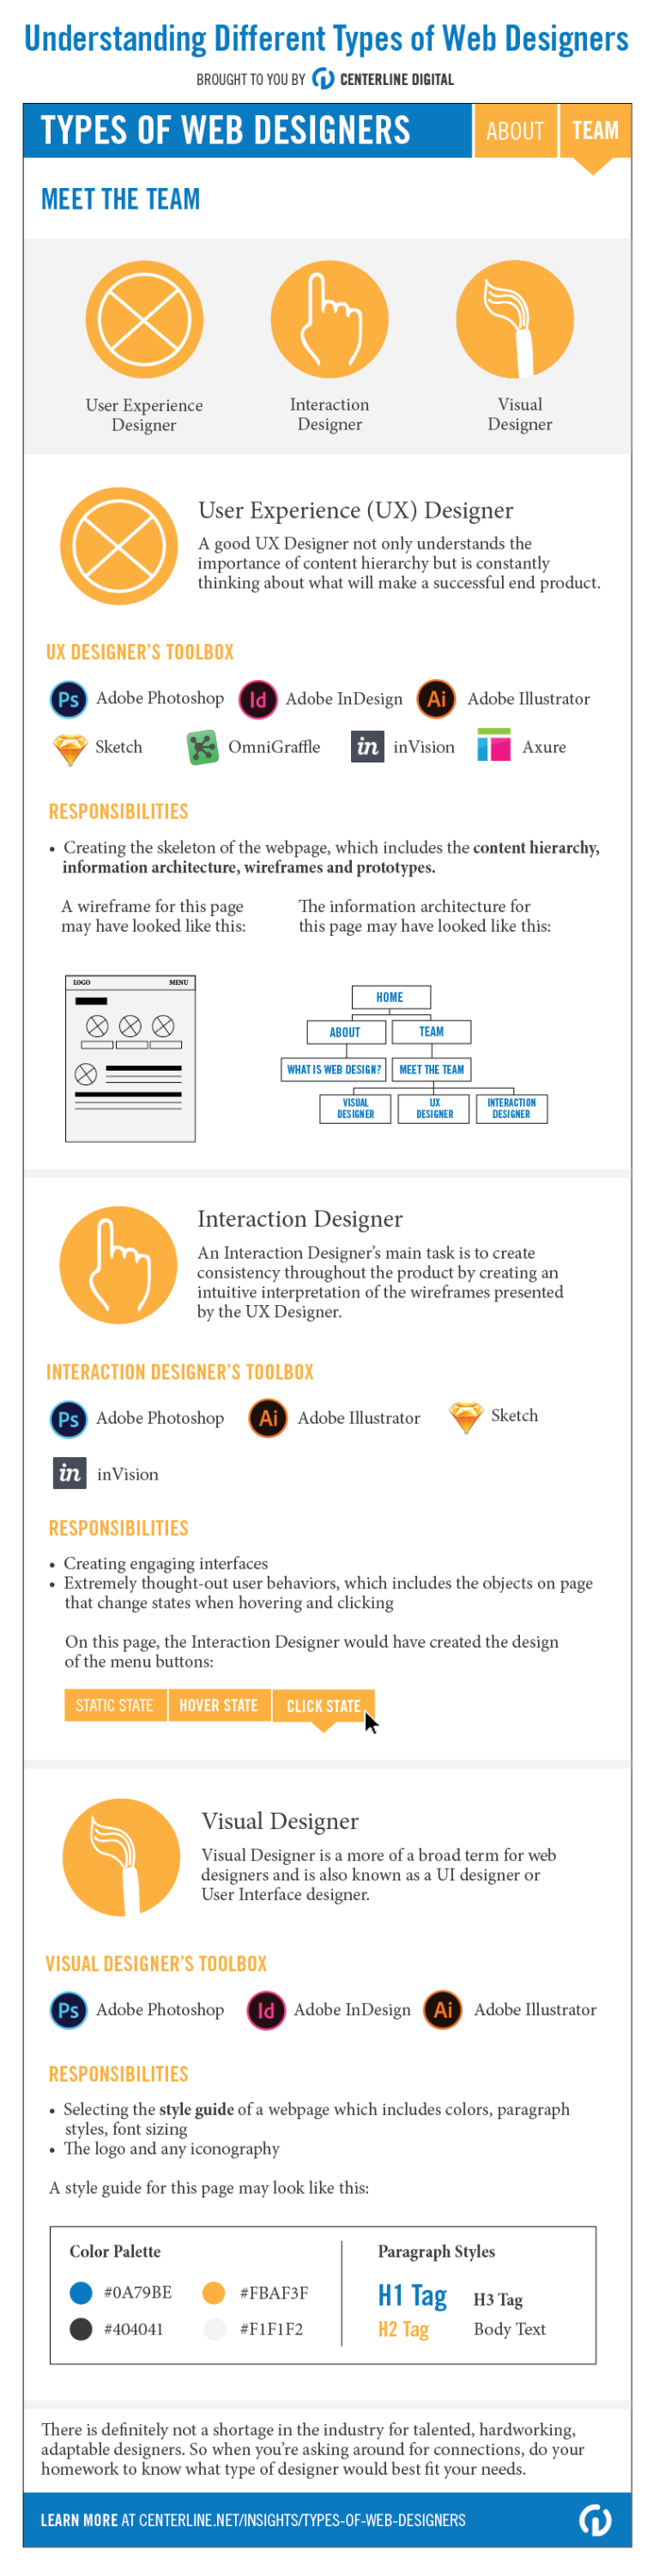 This infographic was created for Centerline Digital using the content from a colleague, Brenna Mickey's blog post. Her blog post covered how to understand different types of web designers. This infographic was aimed at helping the readers understand through the use of visuals.